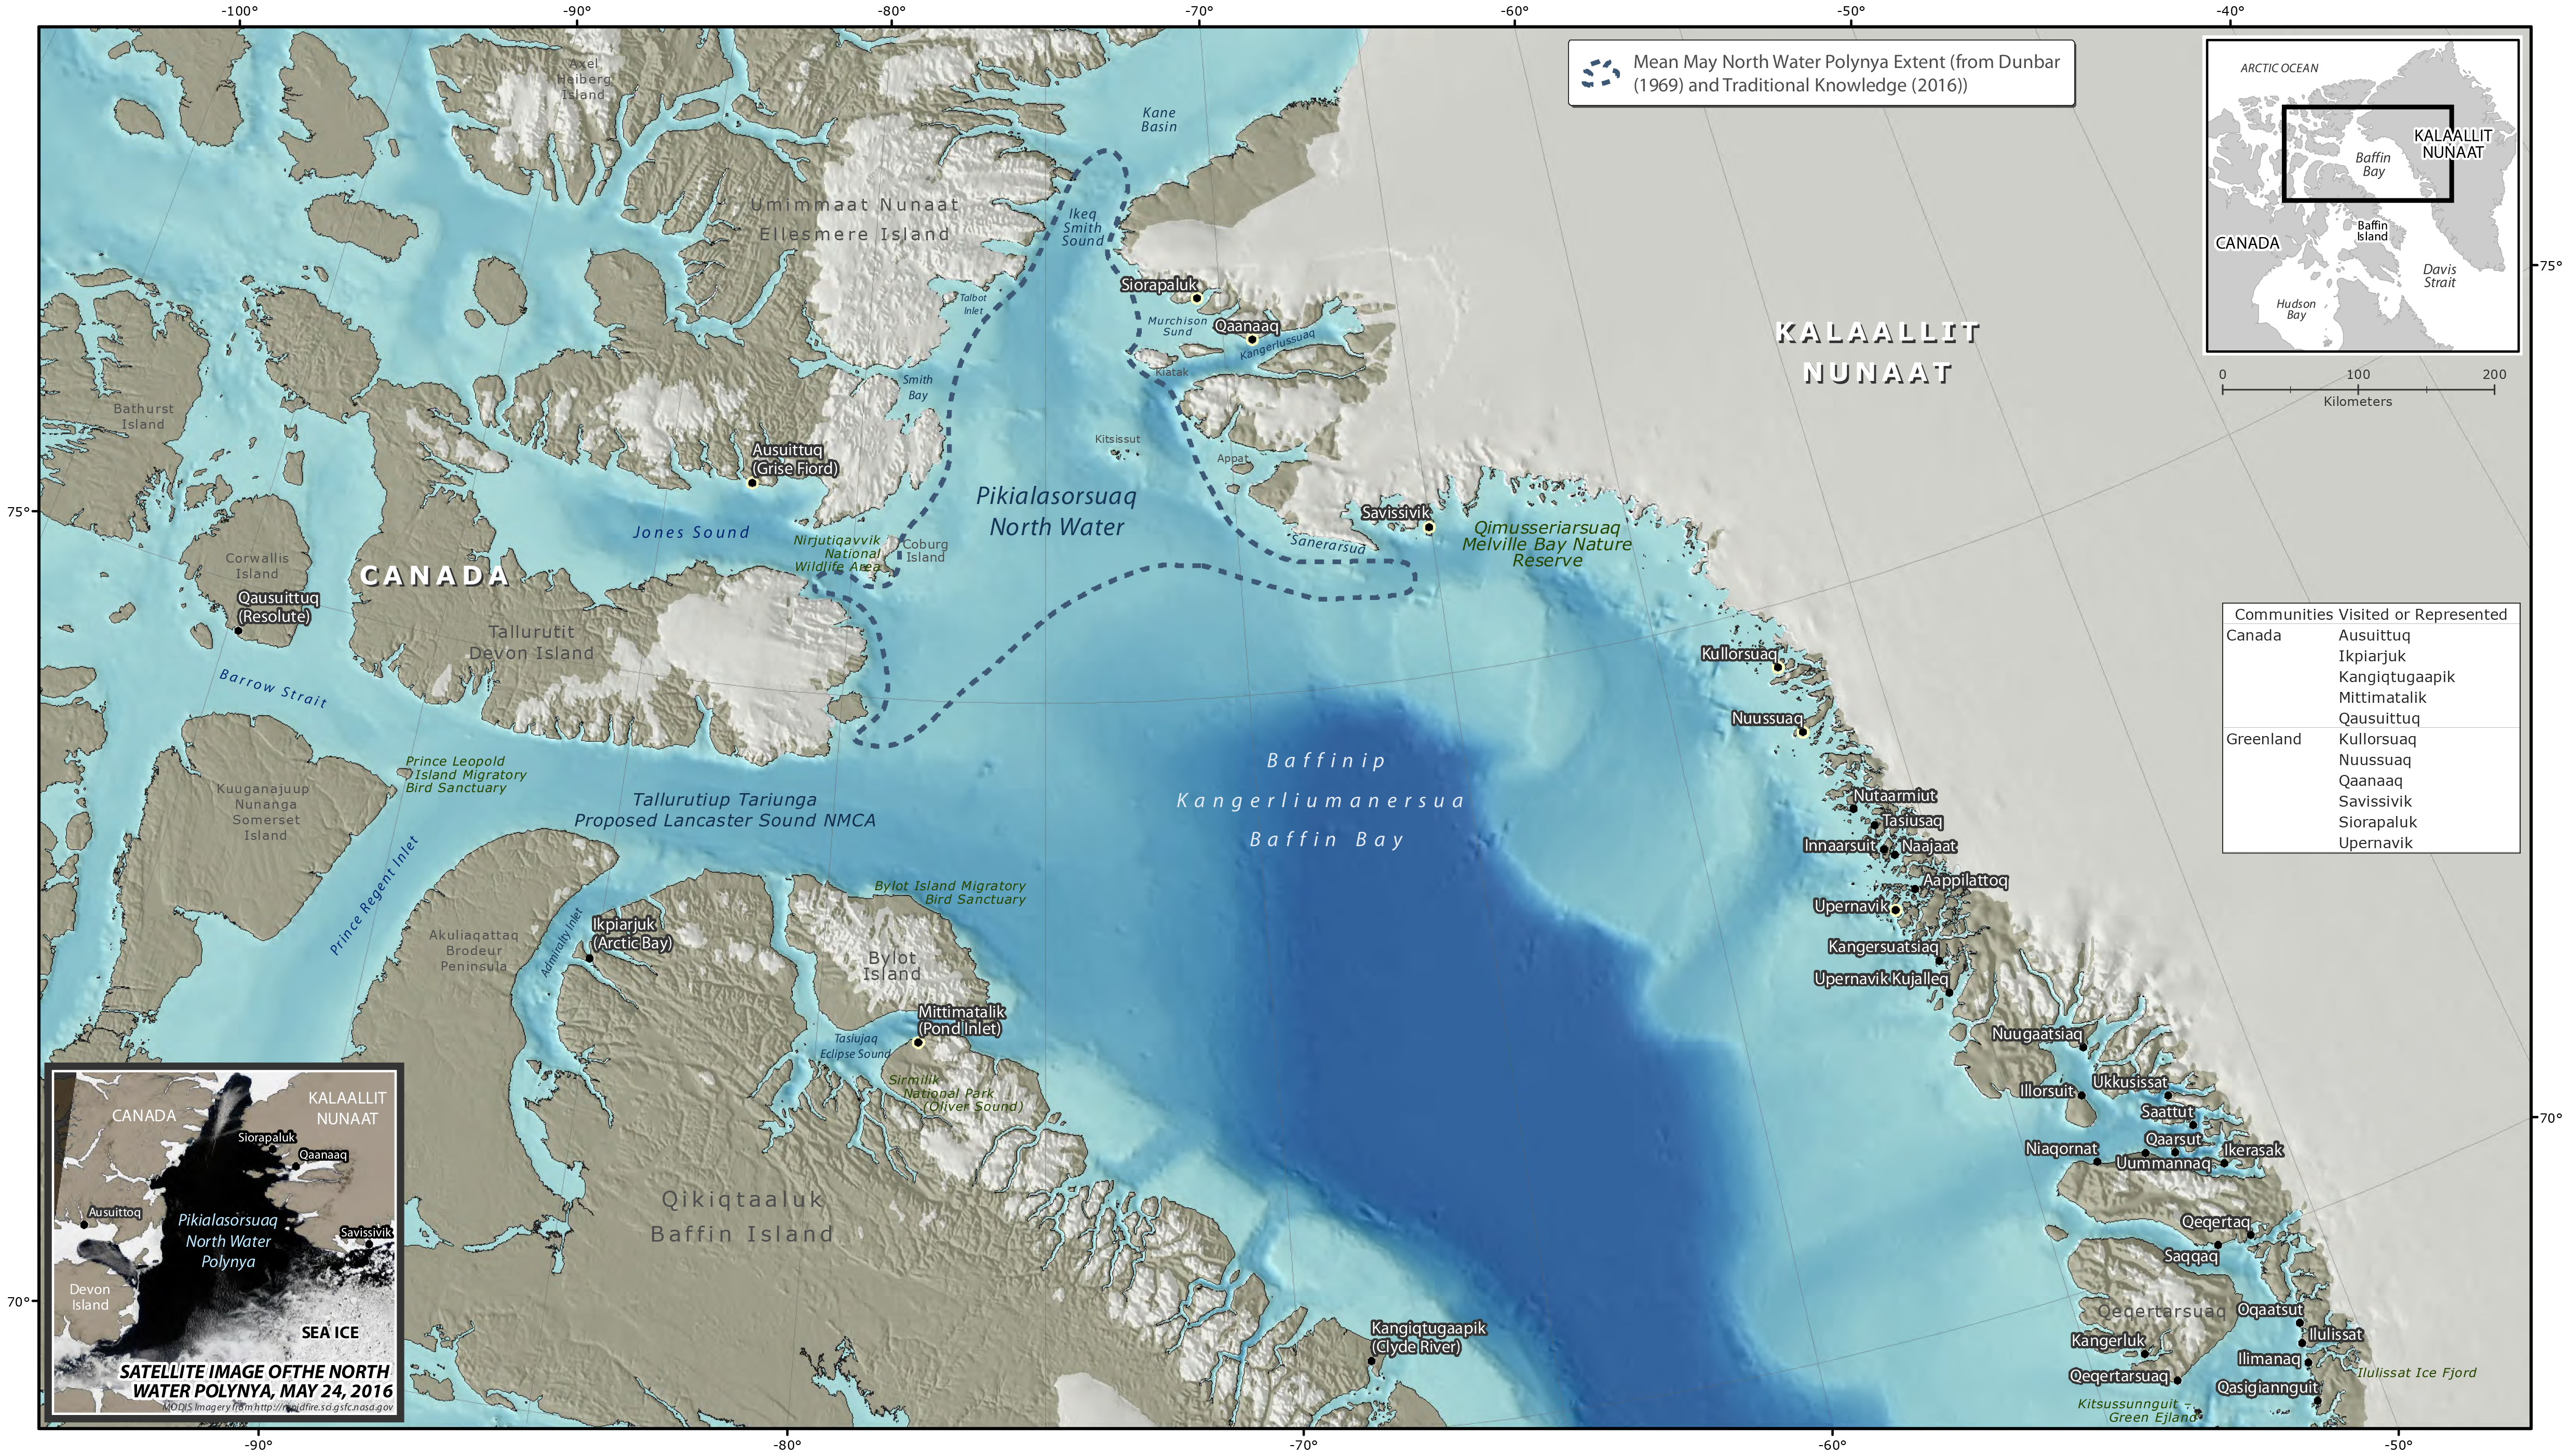 A new report proposes Inuit cross-border management for North Water Polynya